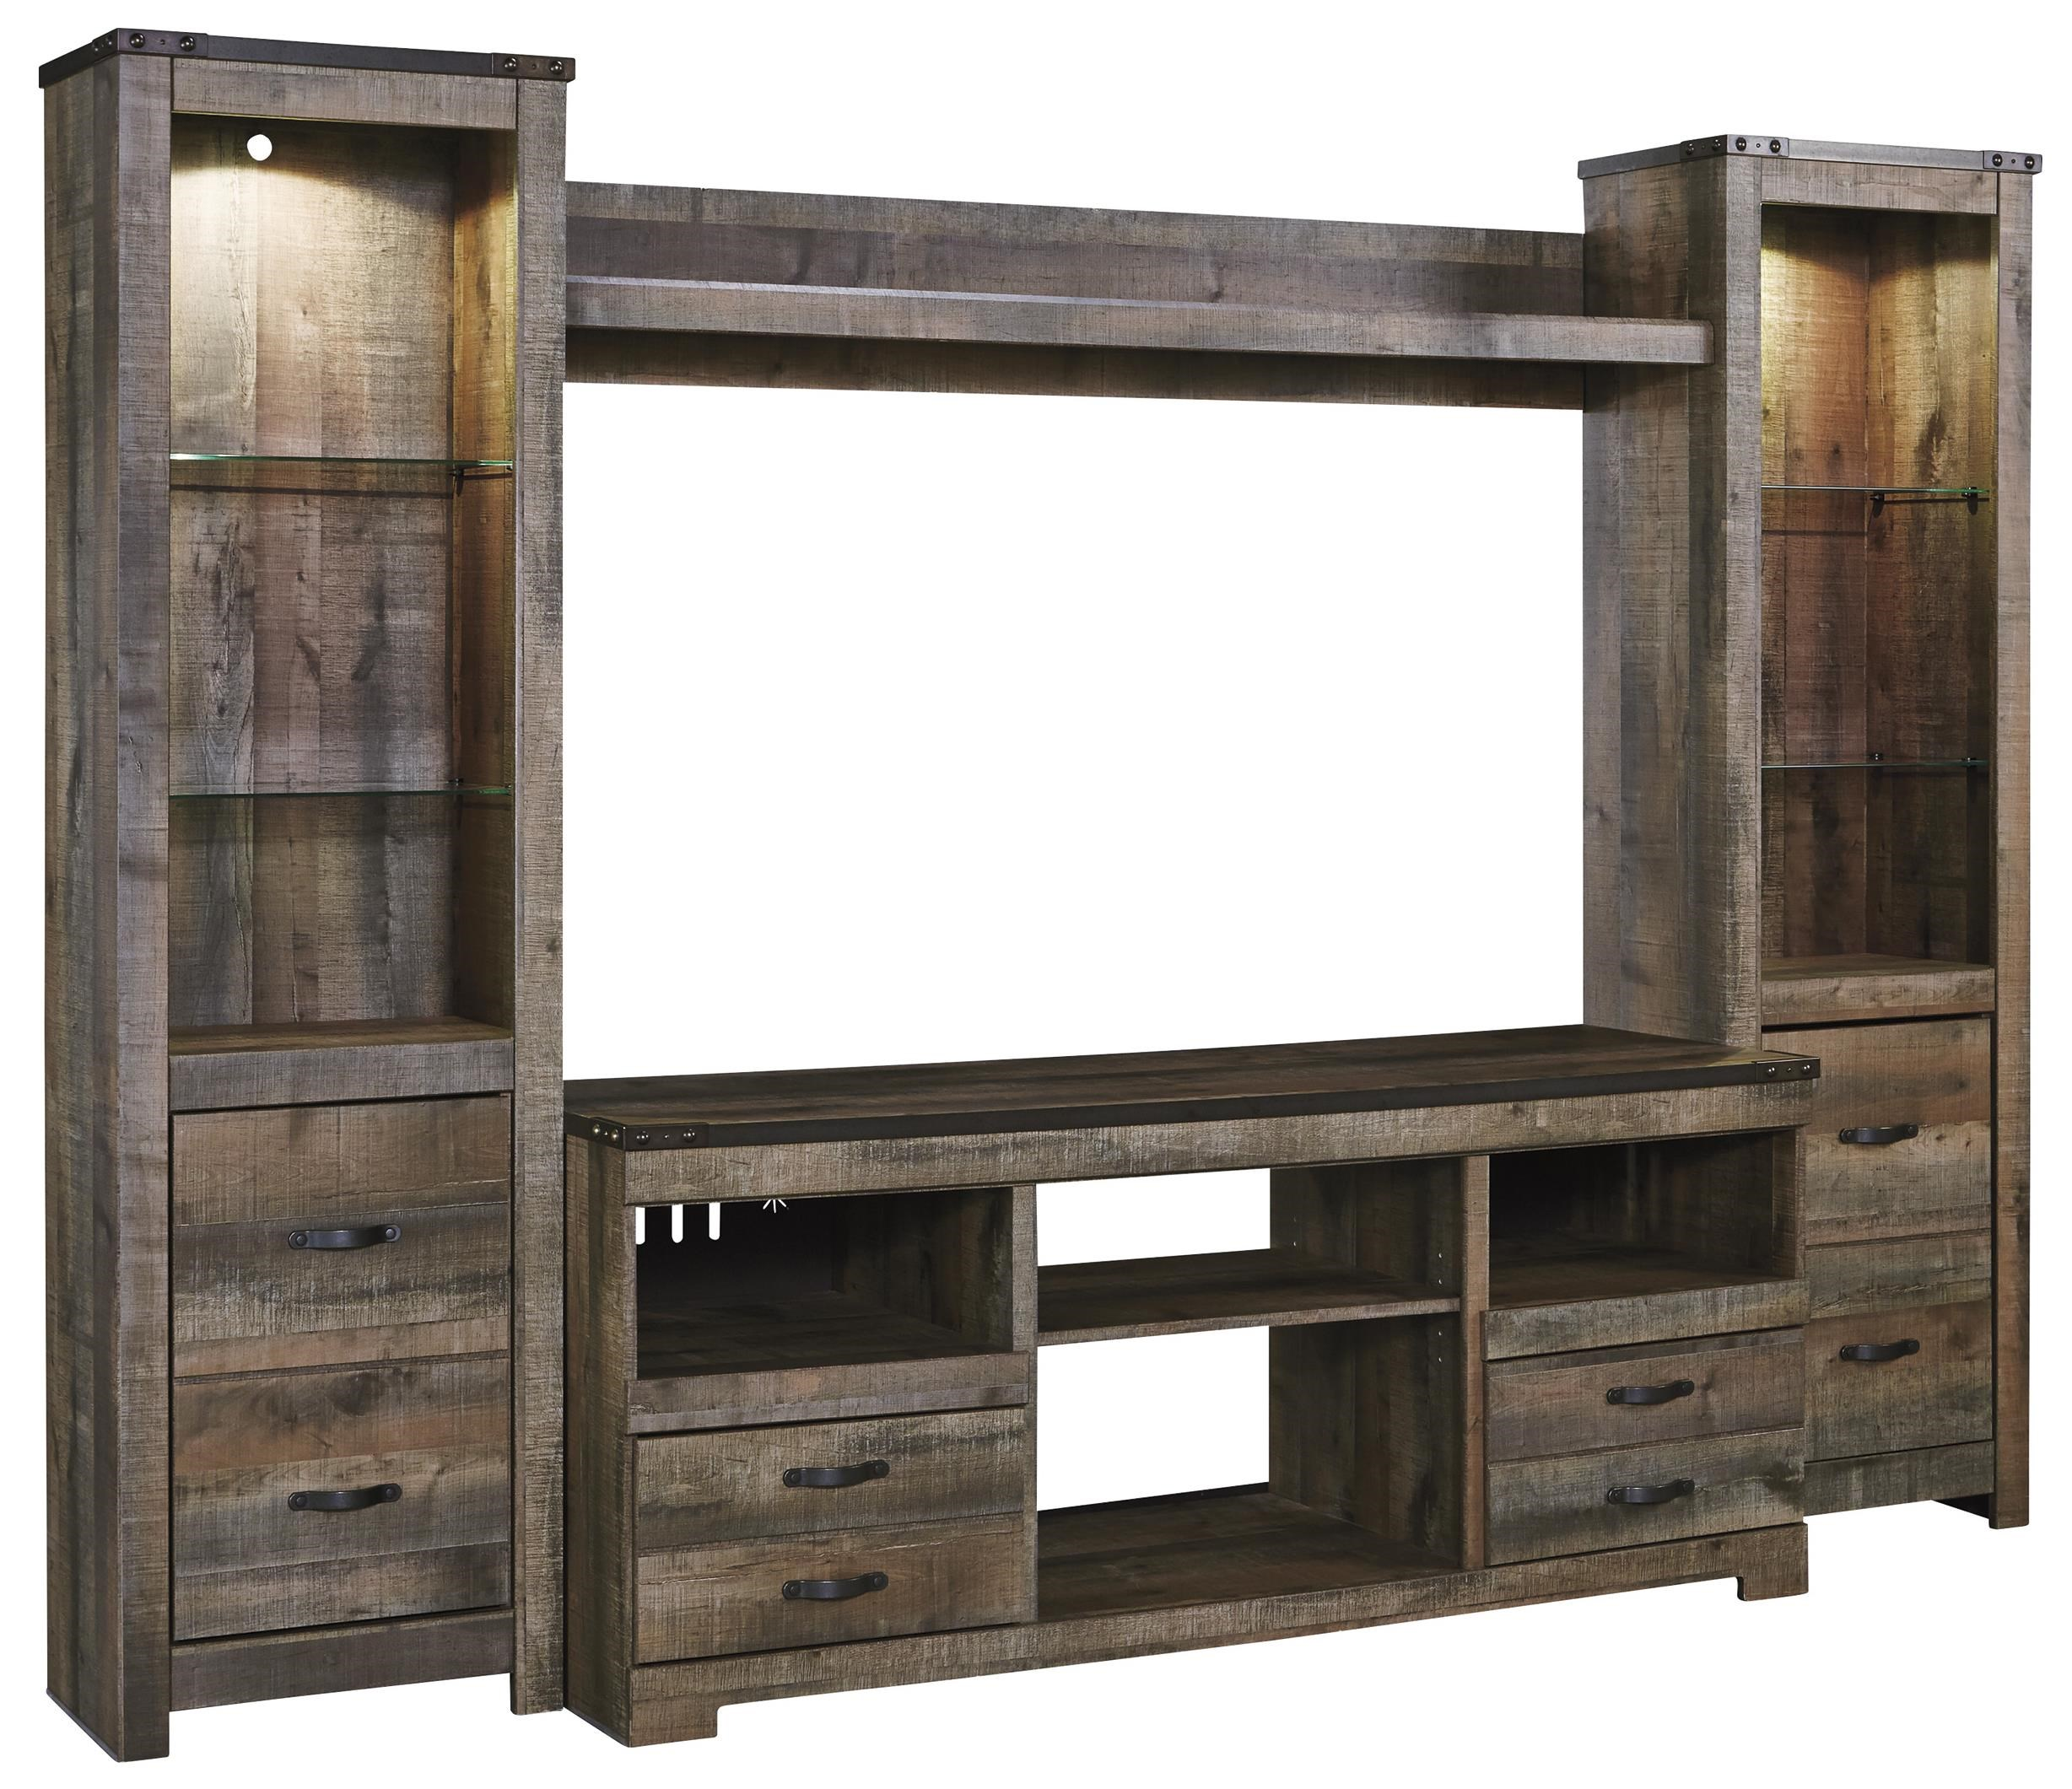 Signature Design By Ashley Trinell Rustic Large TV Stand U0026 2 Tall Piers W/  Bridge